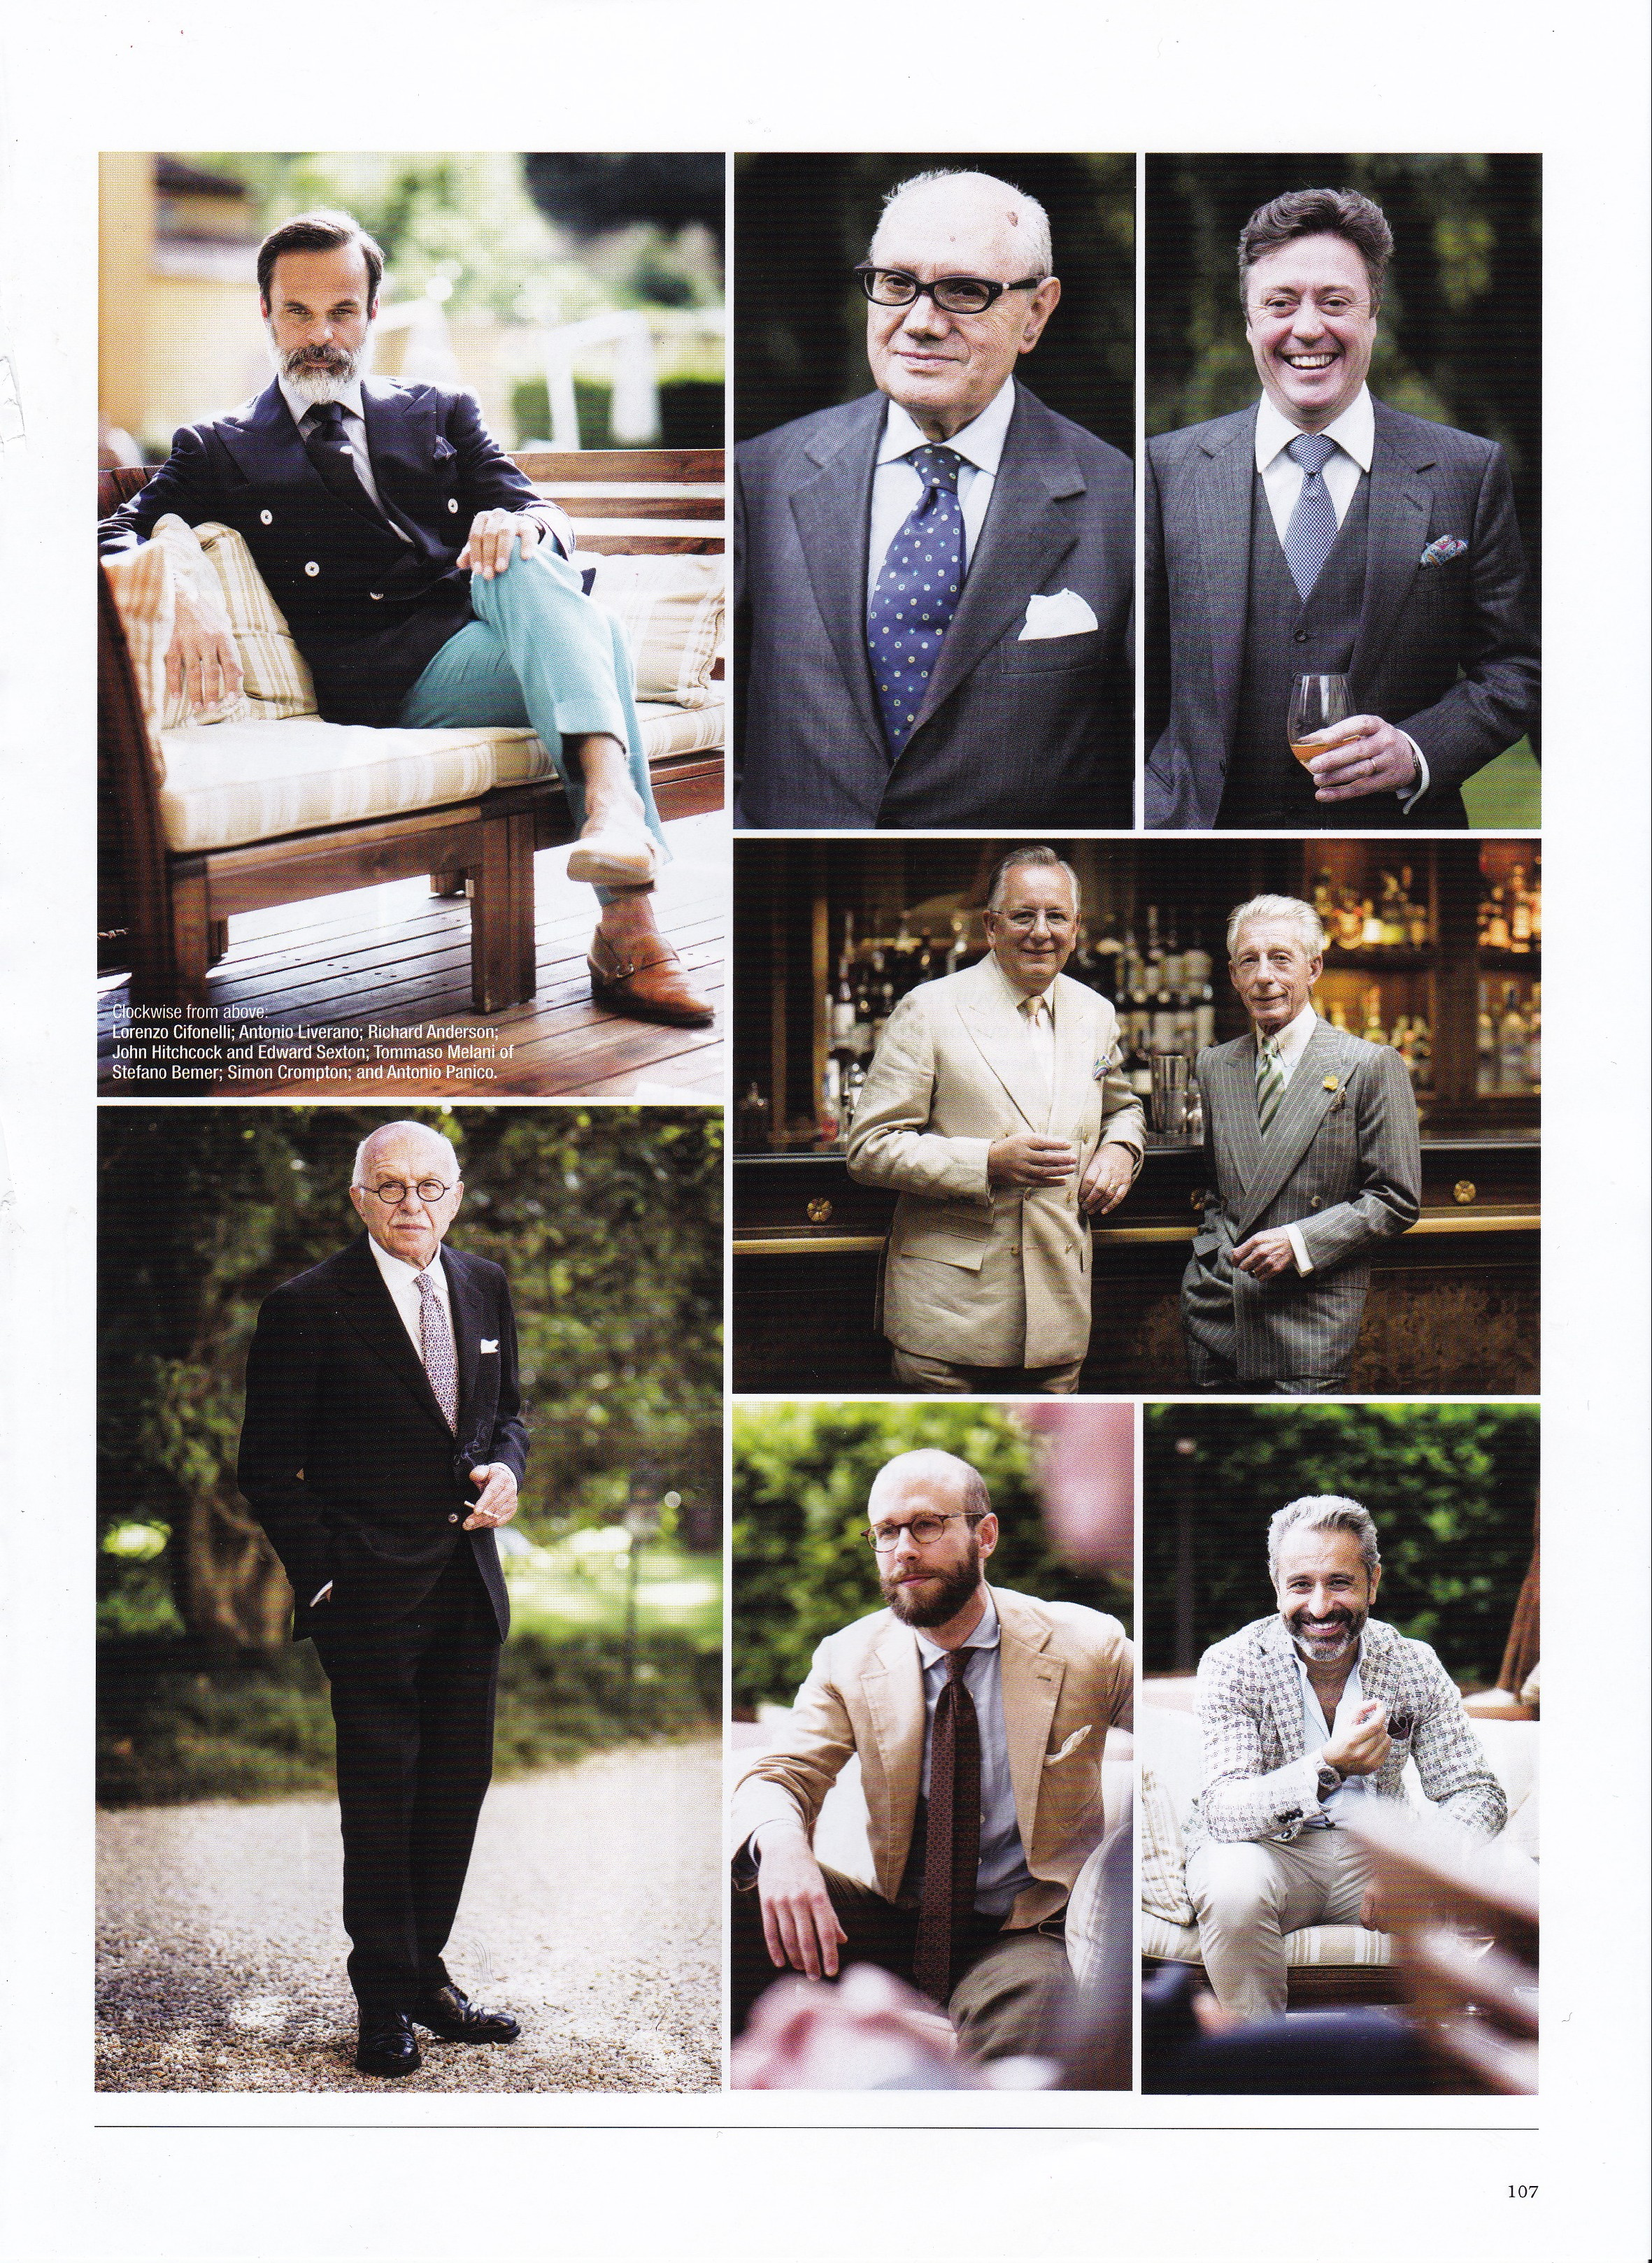 Special feature article on Savile Row Tailors featuring Edward Sexton, centre right